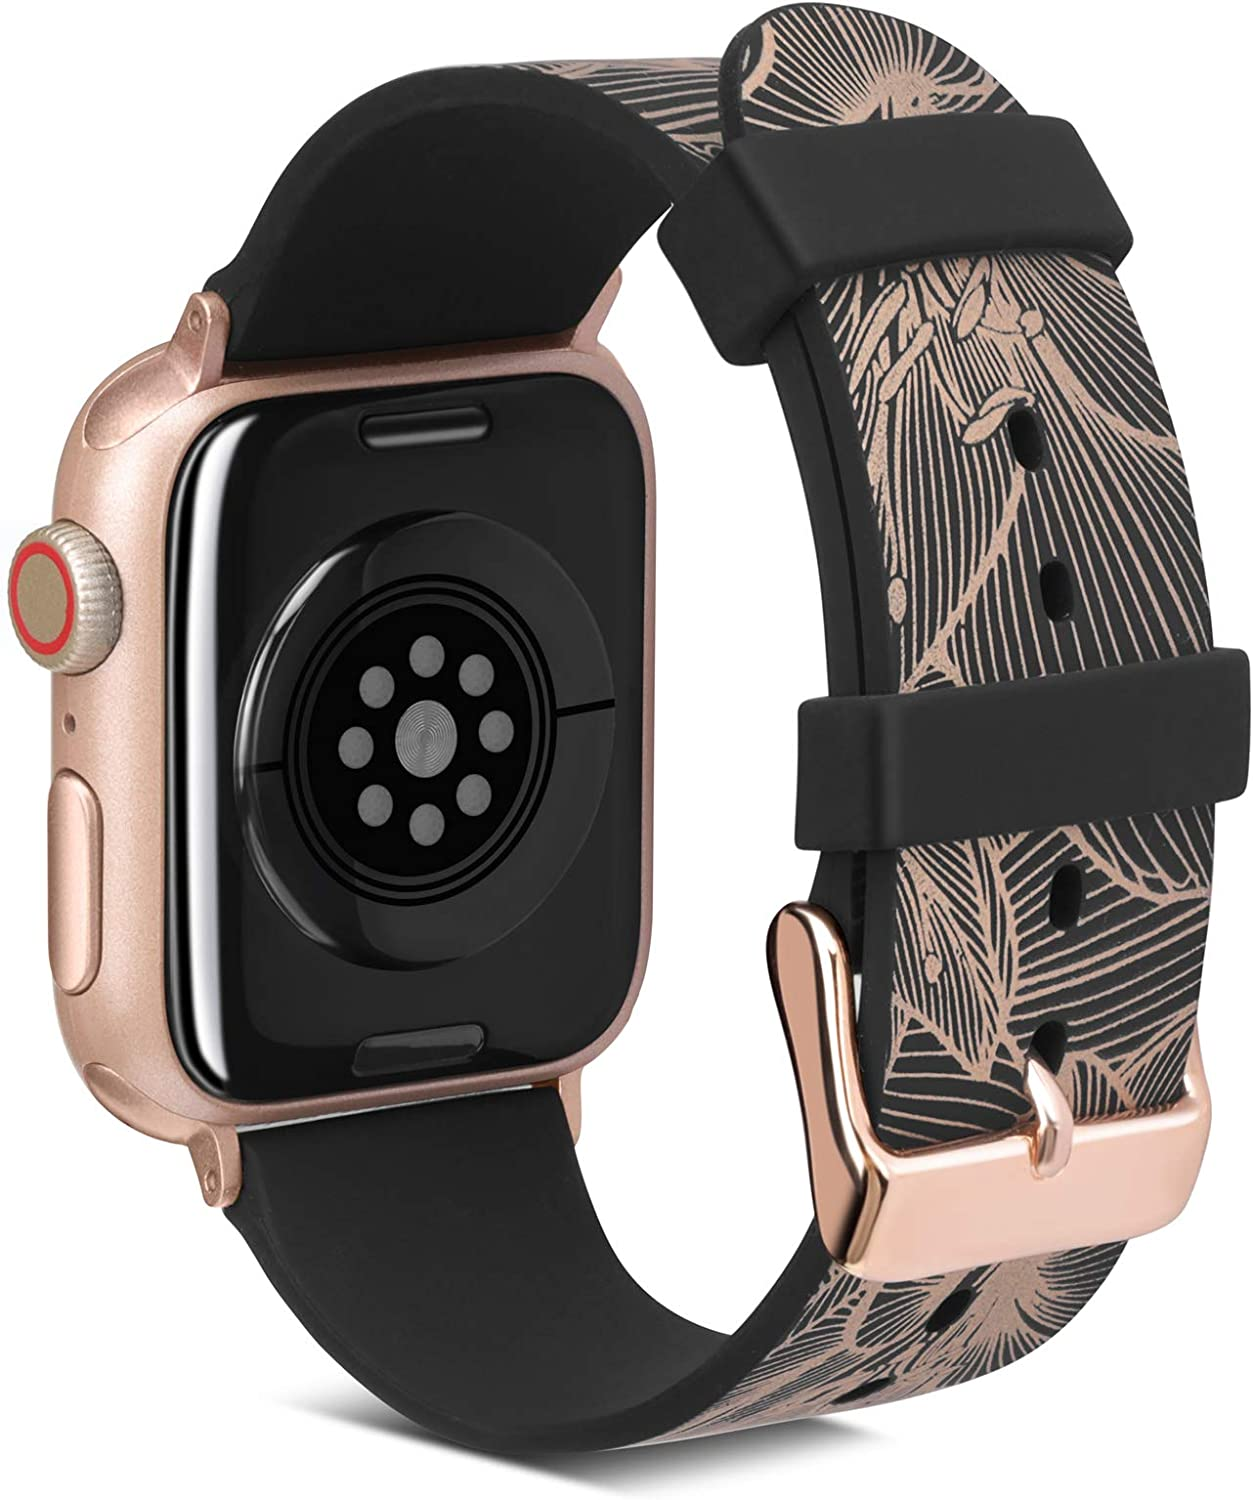 Fine Art Printing Band Compatible with Apple Watch Band 38mm 40mm, FITWORTH Muses Series, Soft, Light & Waterproof, Beautiful Thin Line Floral Pattern Suit for Women, Girl or Lady (Rose Golden)